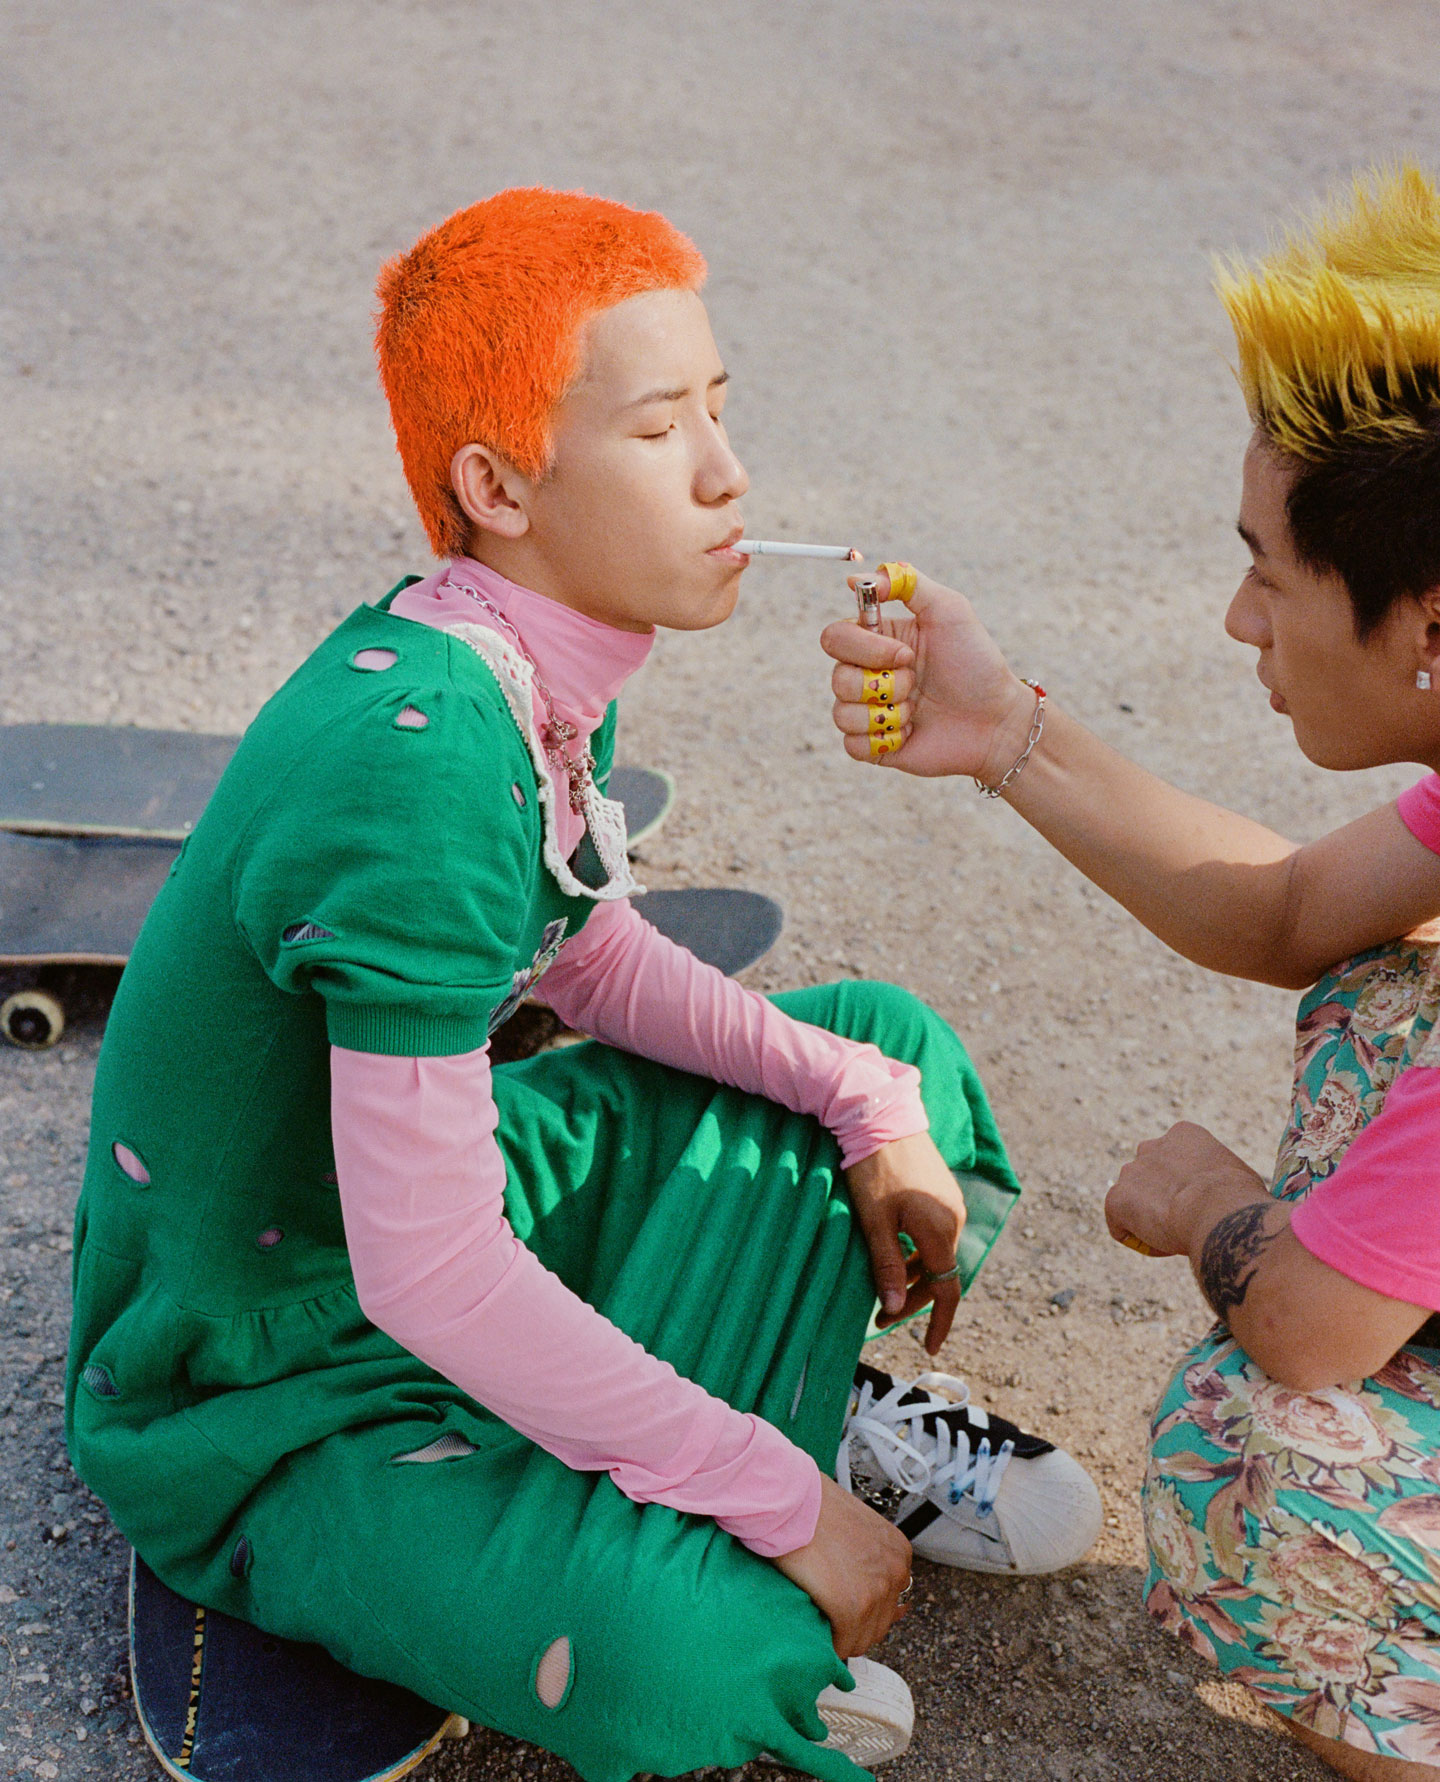 two young men with colourful hair sit on skateboards, one lights the other's cigarette